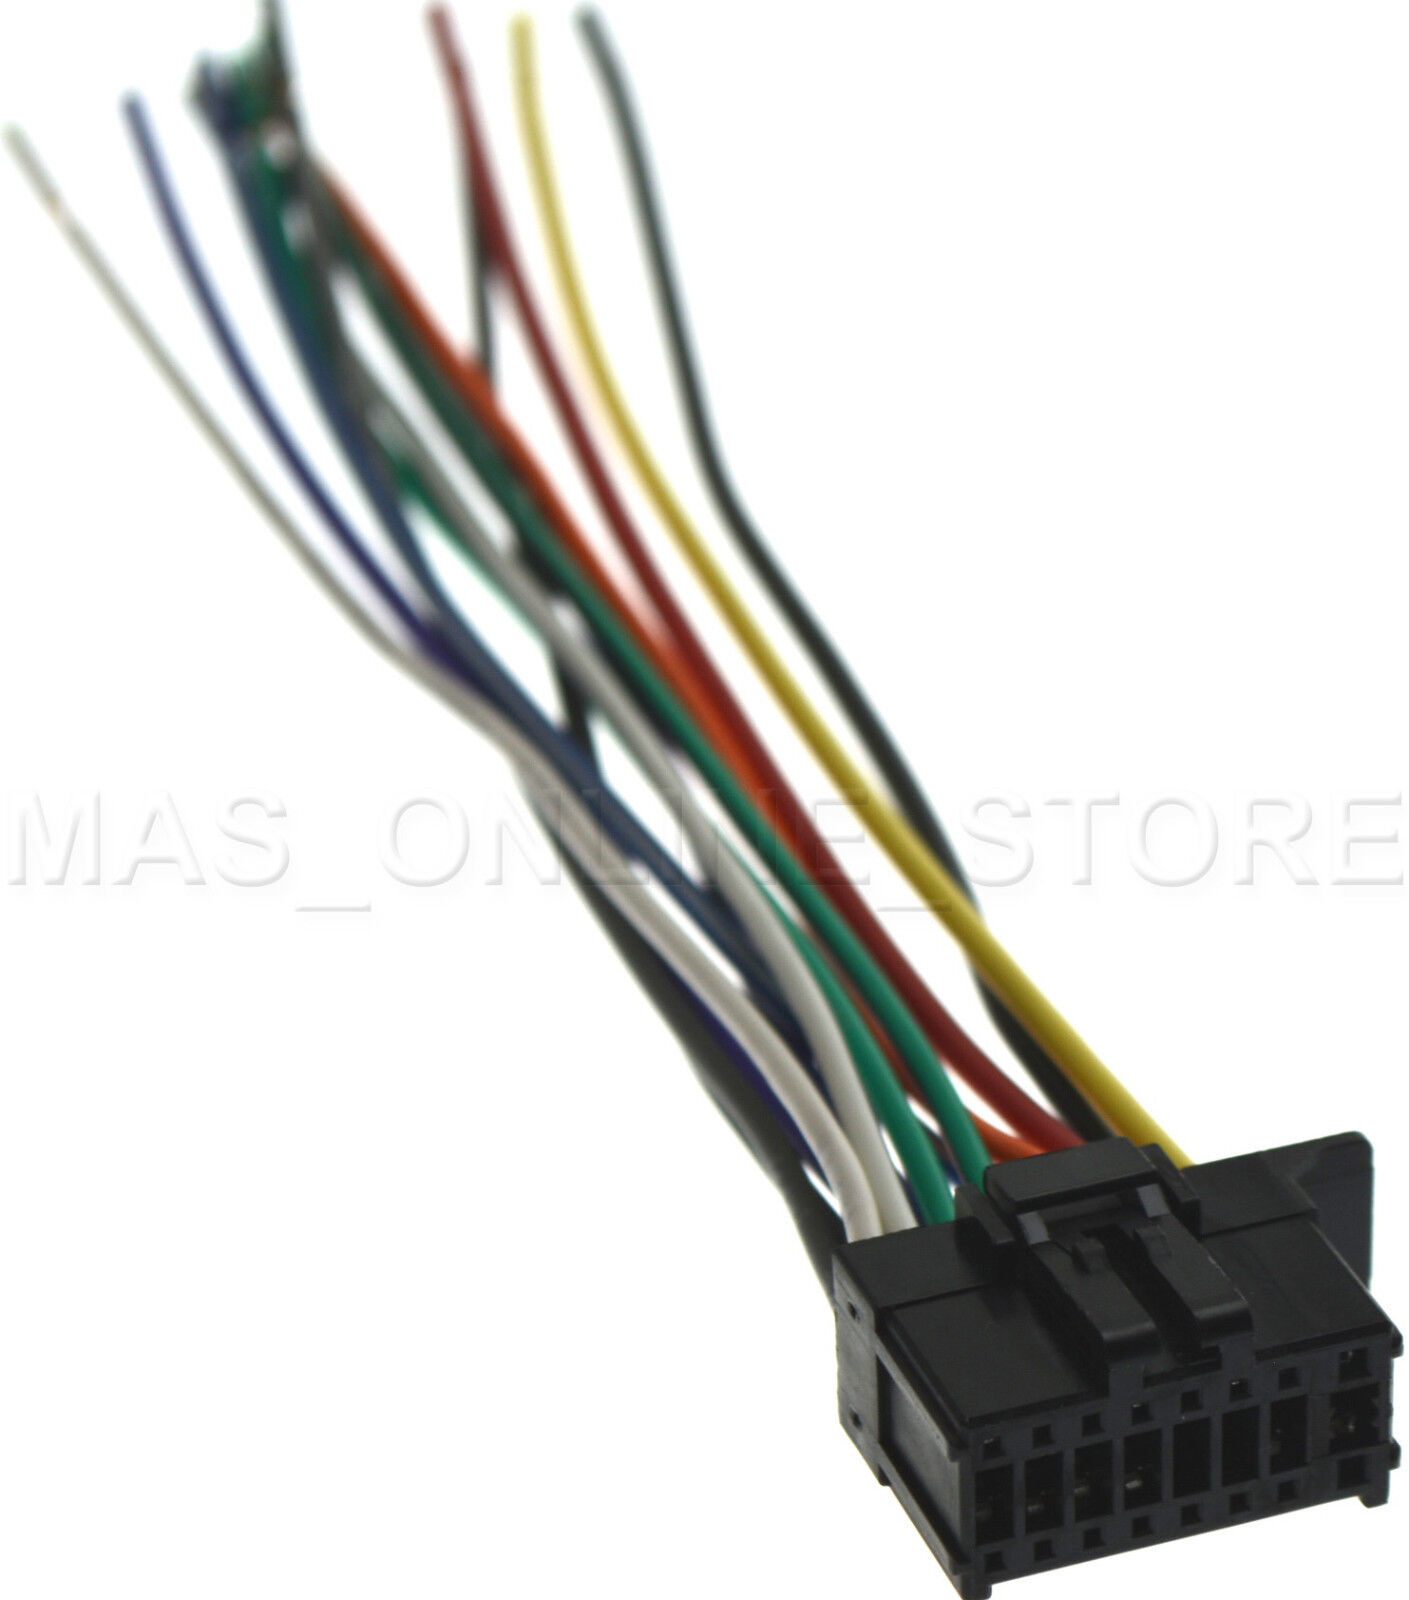 Wire Harness For Pioneer Dxtx2769Ui Dxt X2769Ui pay Today _57?resized665%2C755 pioneer dxt 2266ub wiring diagram efcaviation com Pioneer Deh 16 Wiring-Diagram at panicattacktreatment.co